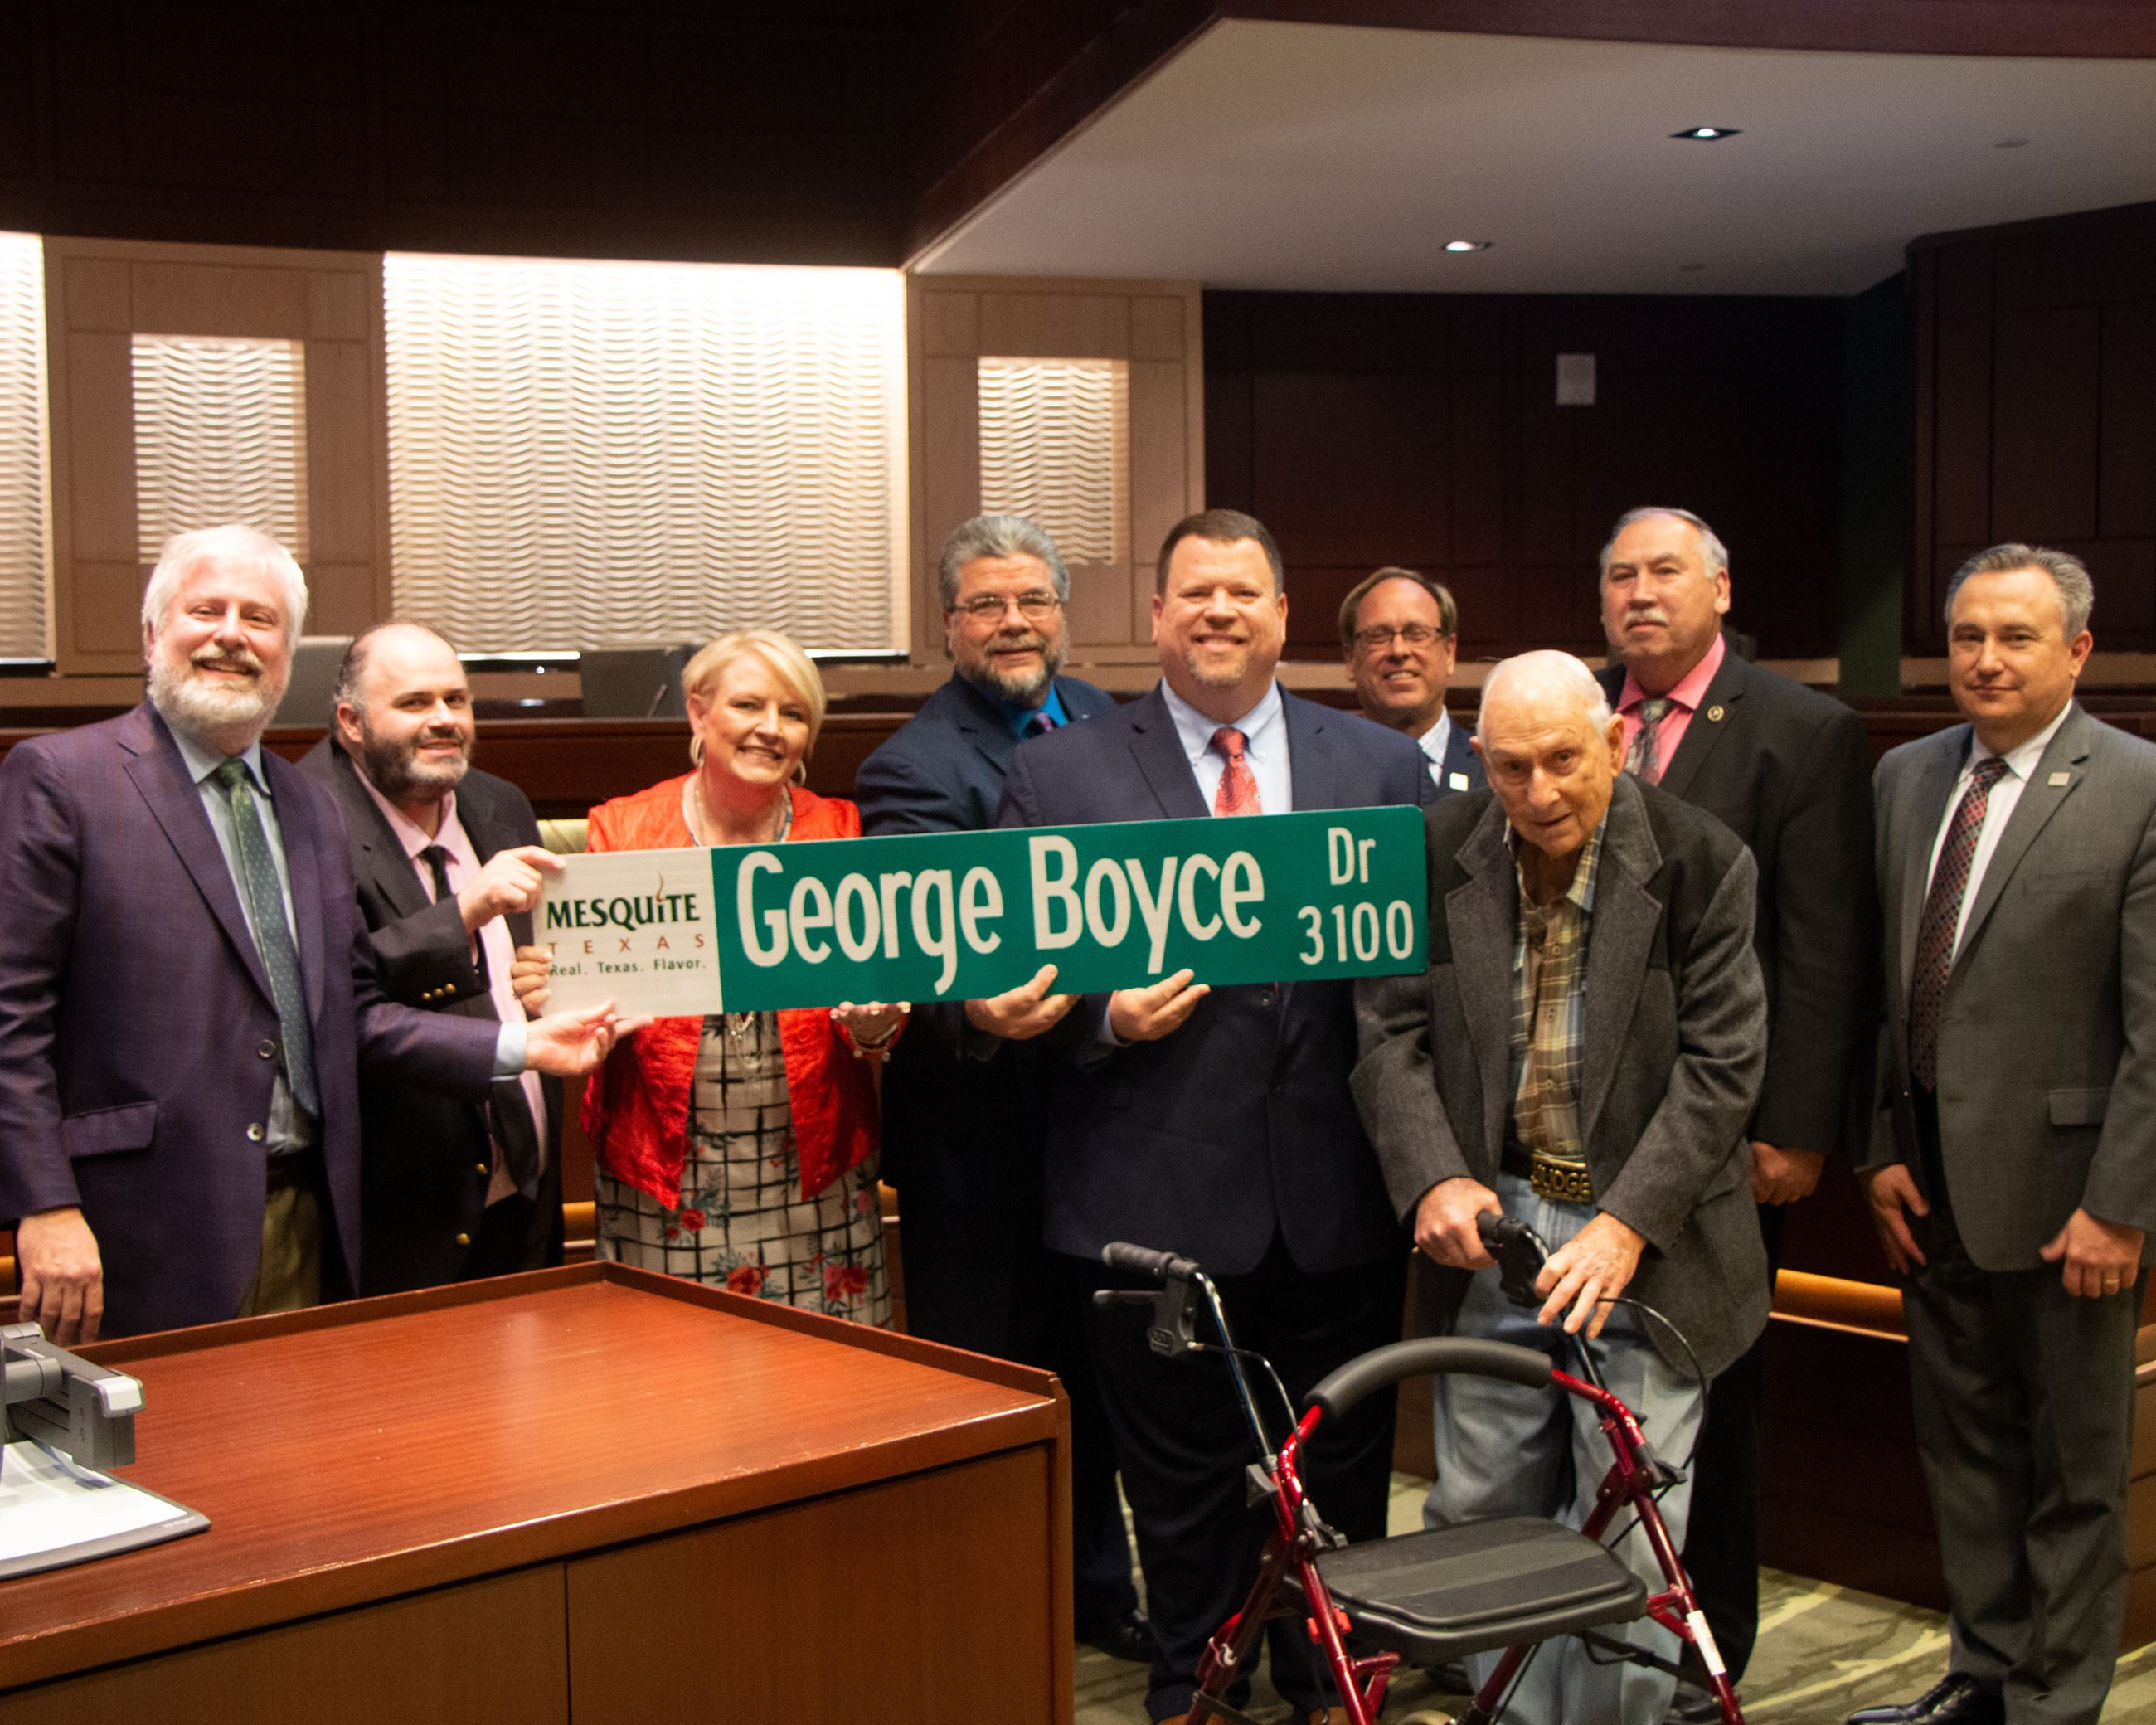 2-17-20 Council Photos - George Boyce Presentation